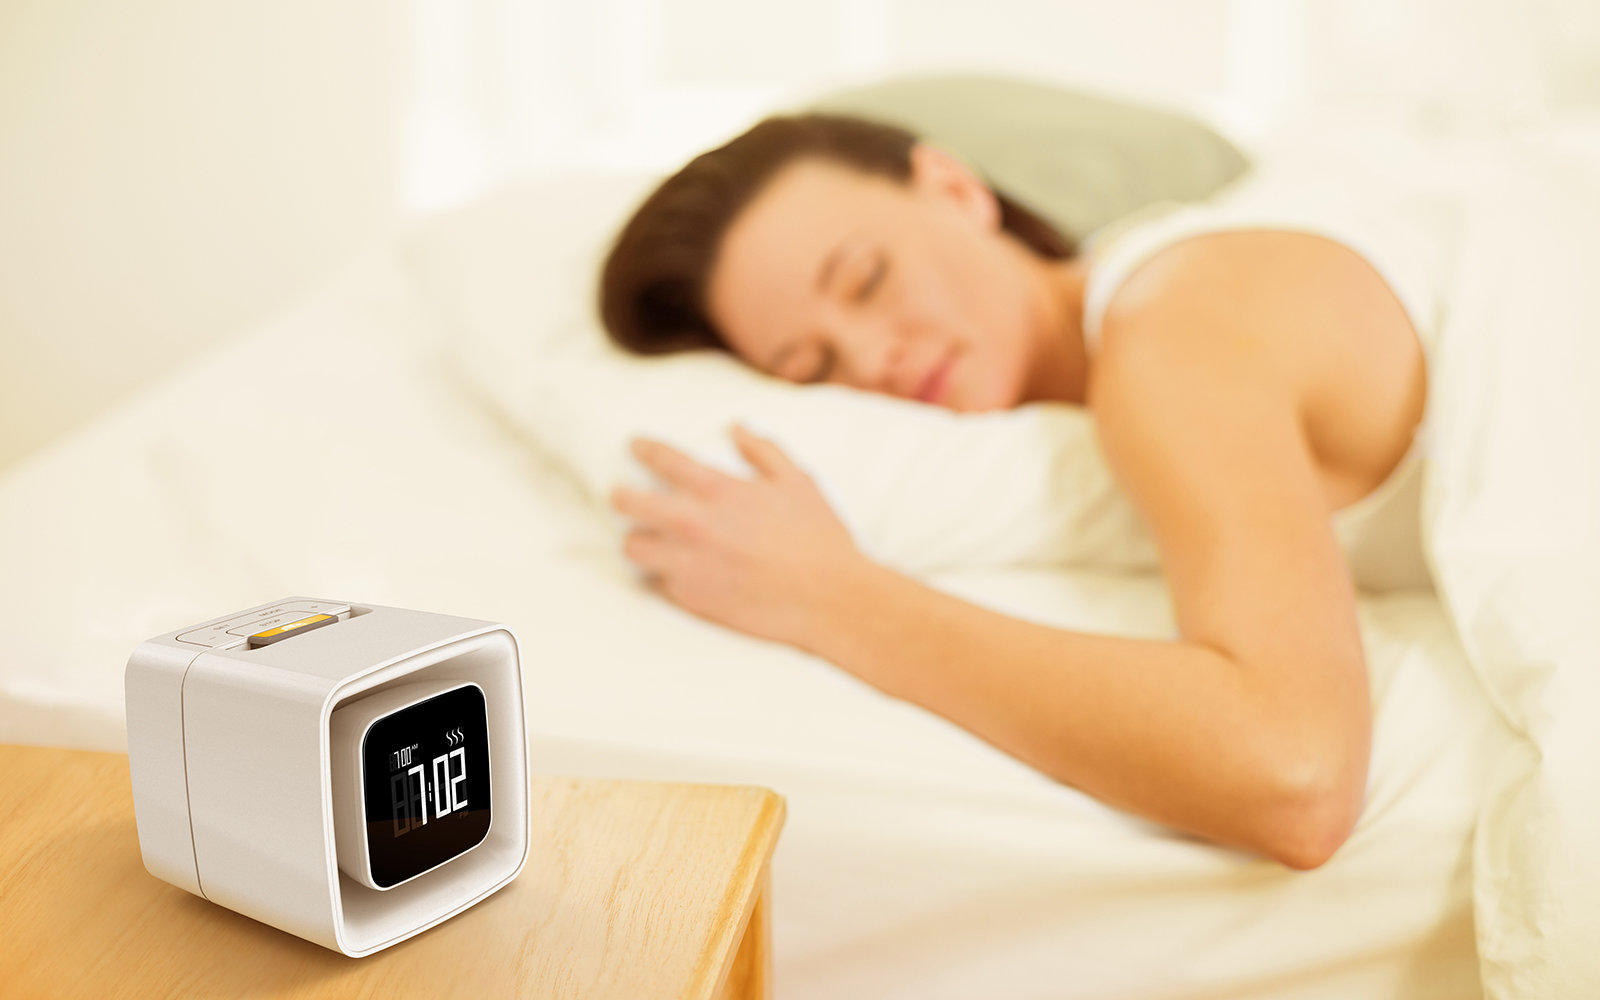 Sensory alarm clock wakes you up to certain smells